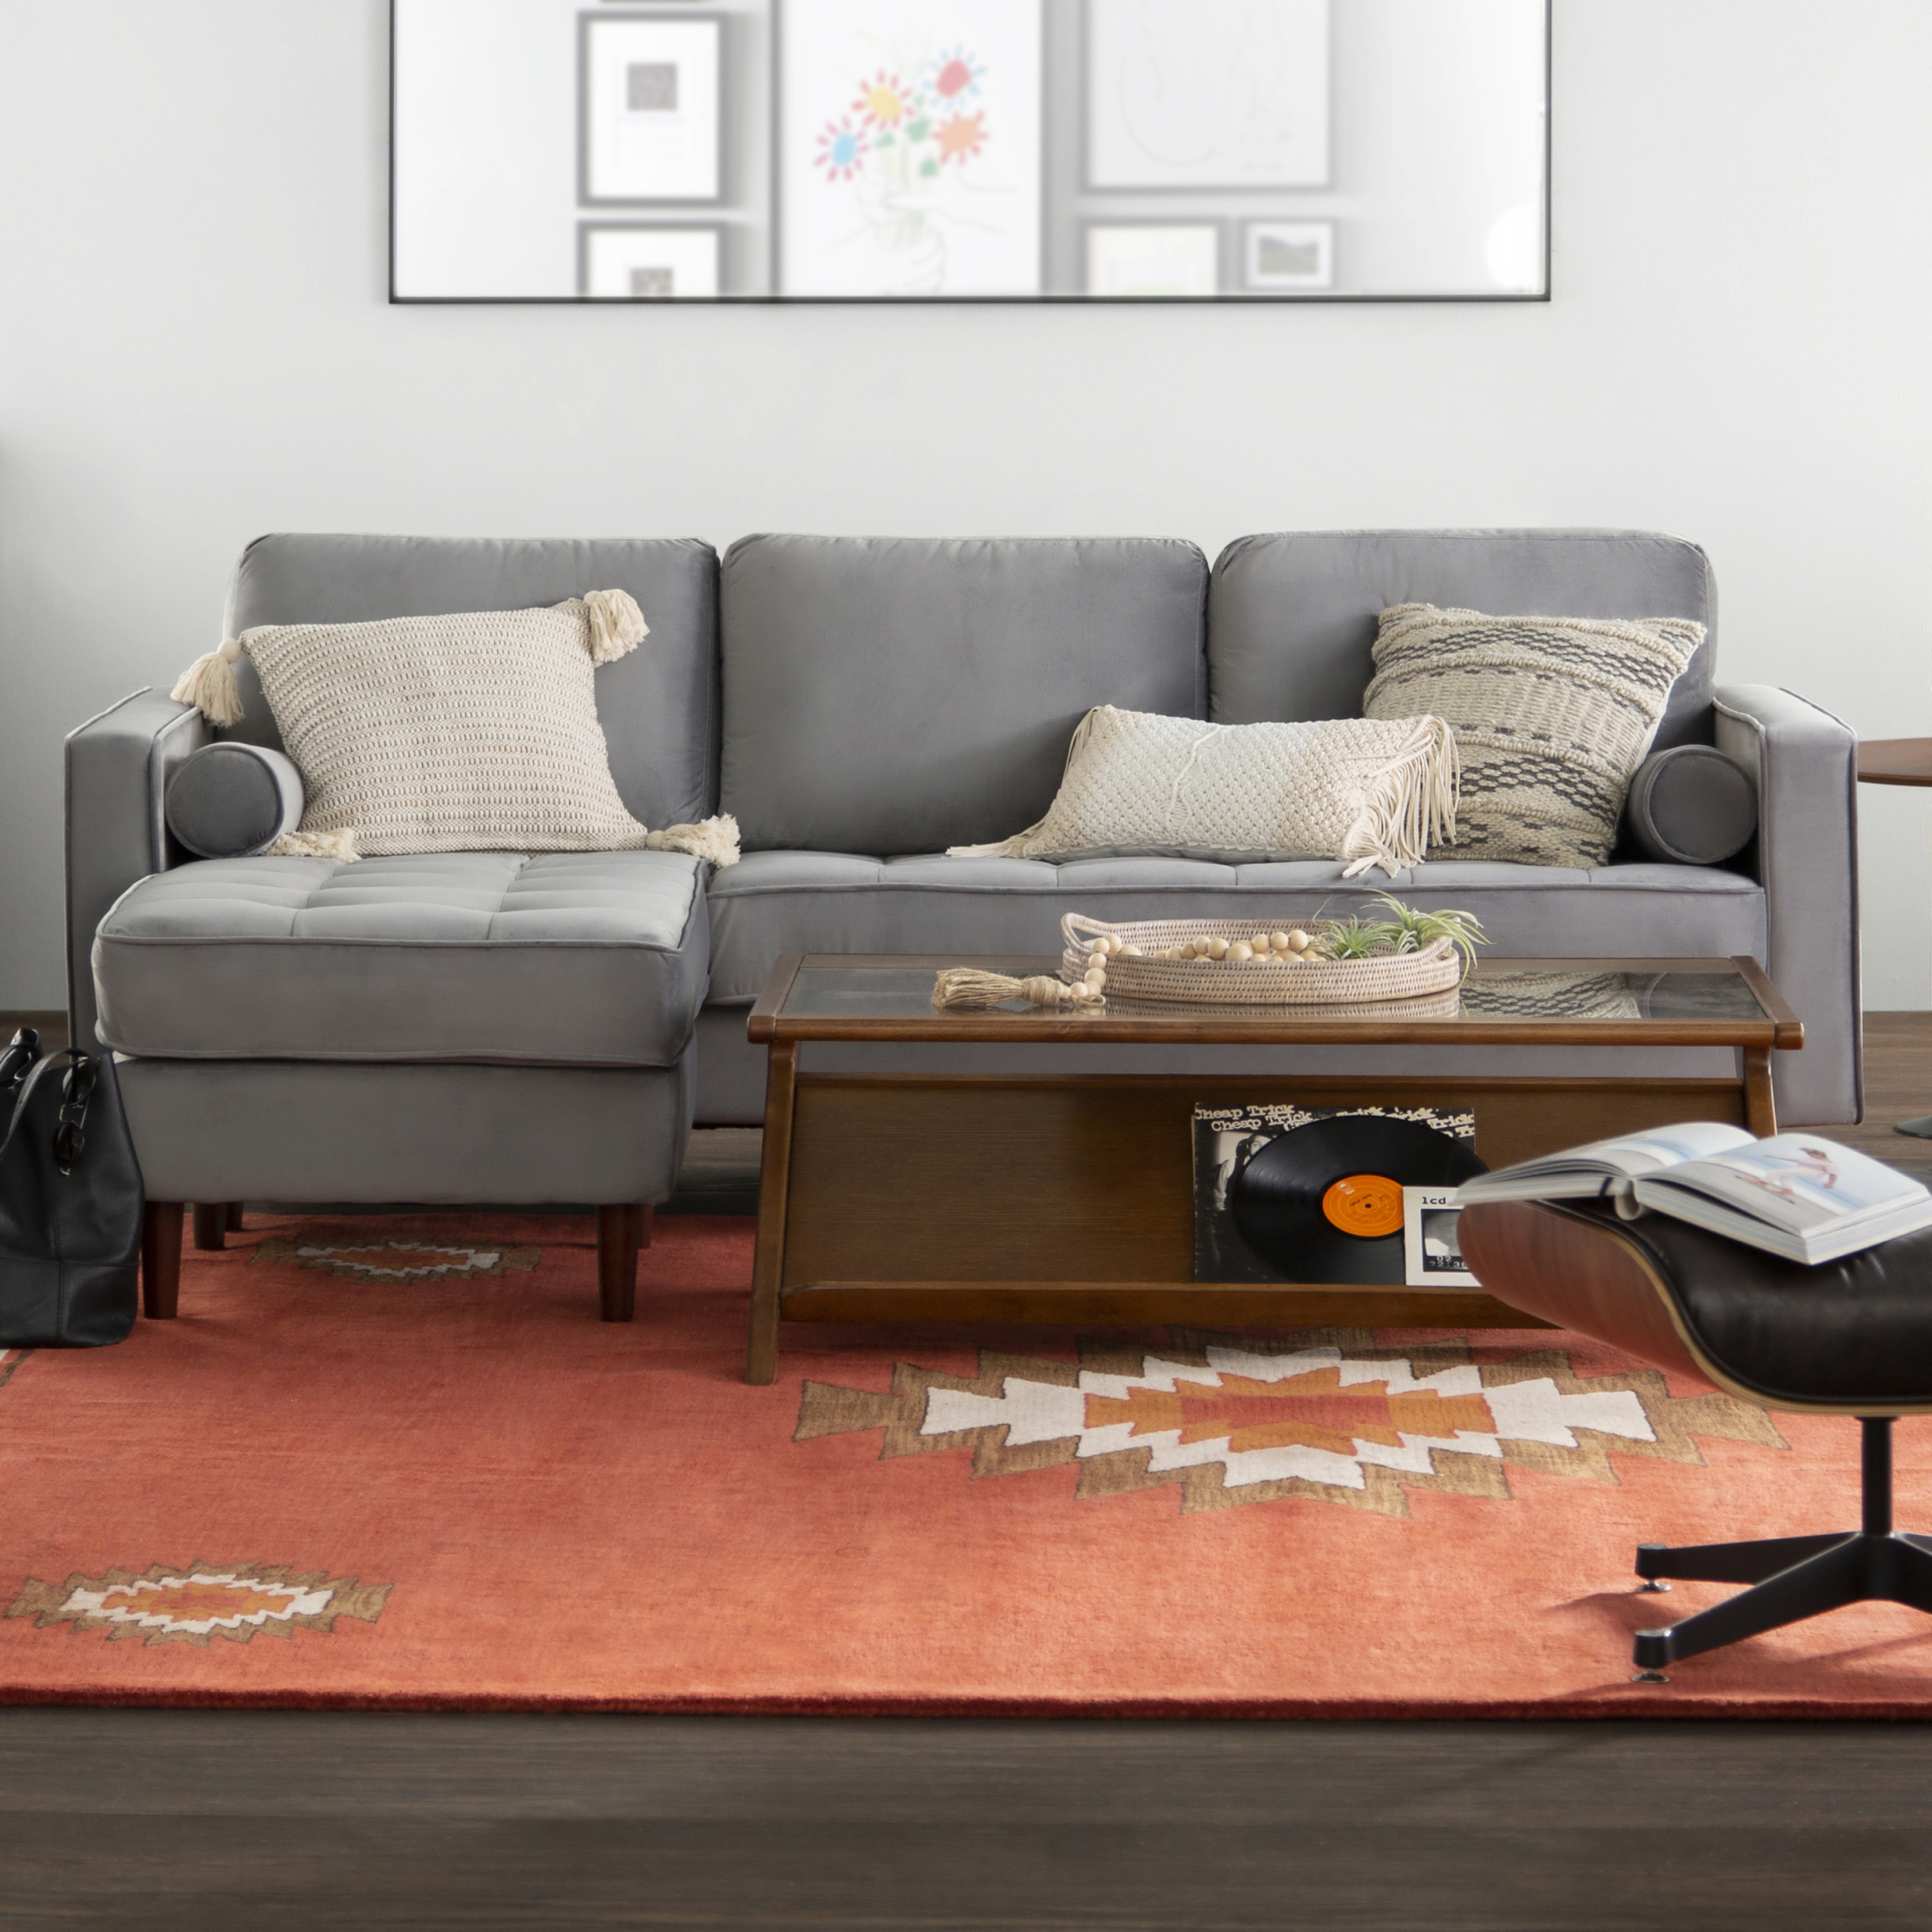 Modern Small Space Furniture | Allmodern pertaining to Awesome Small Space Living Room Furniture